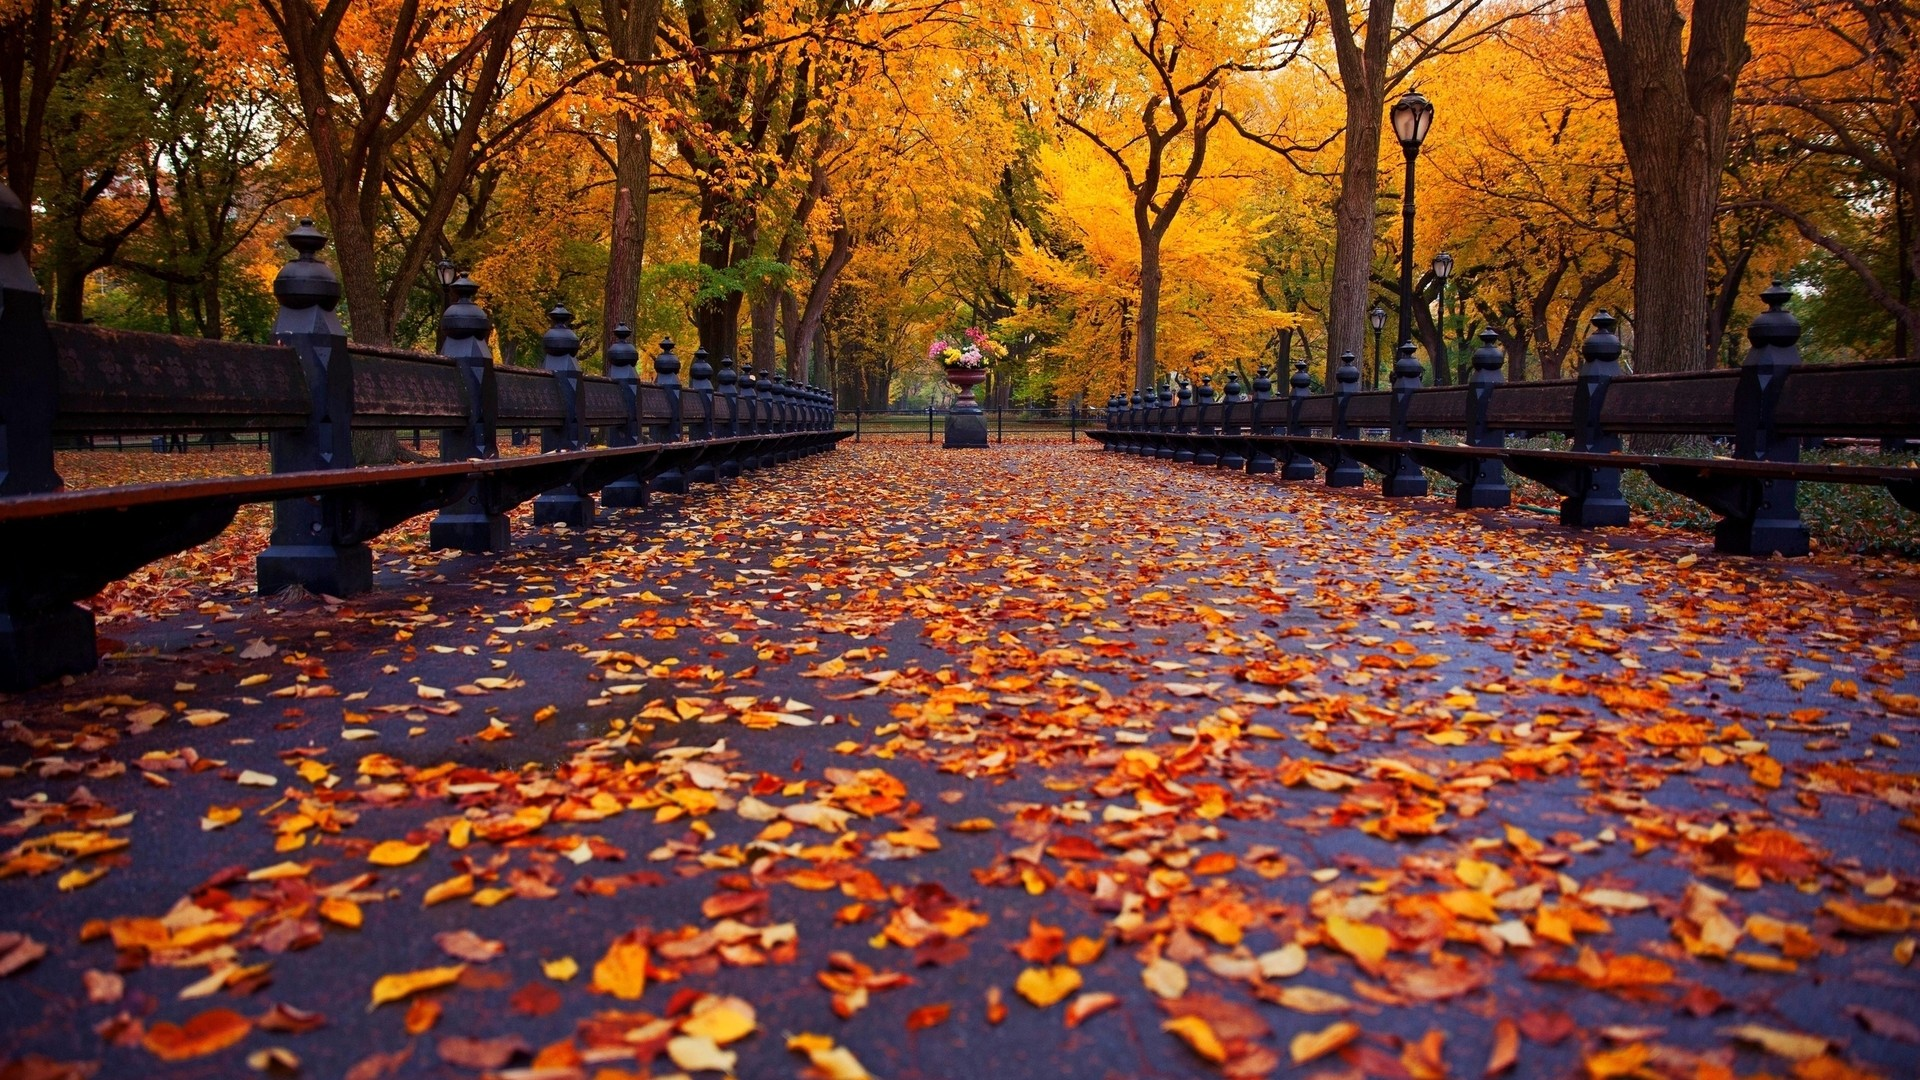 Cute Fall Wallpaper Backgrounds (60+ Images